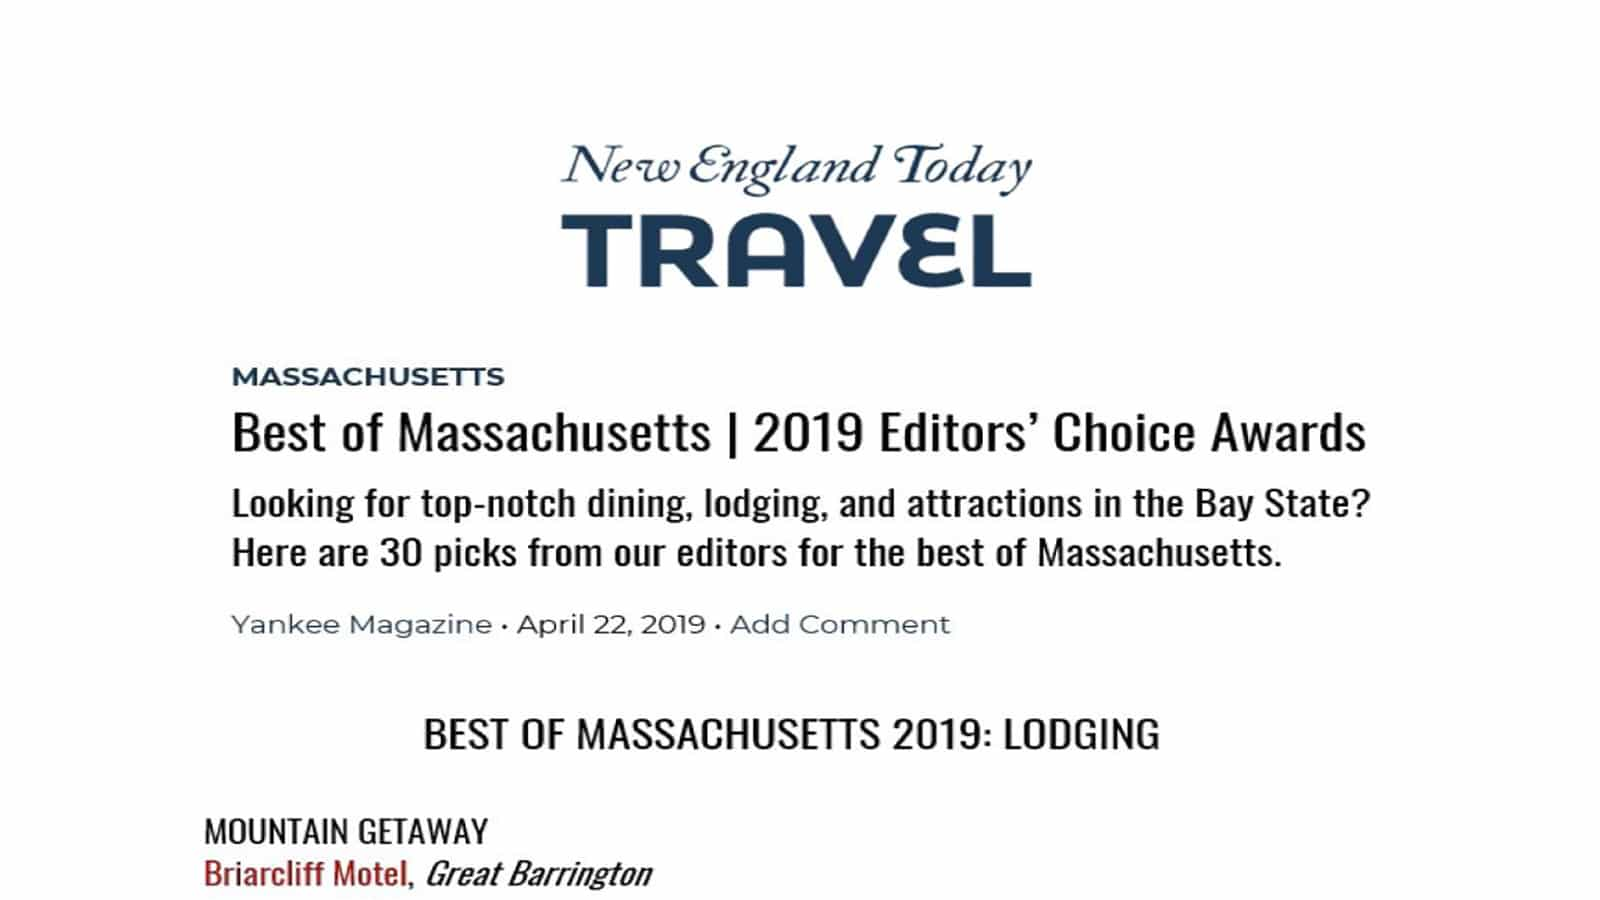 New England Today article